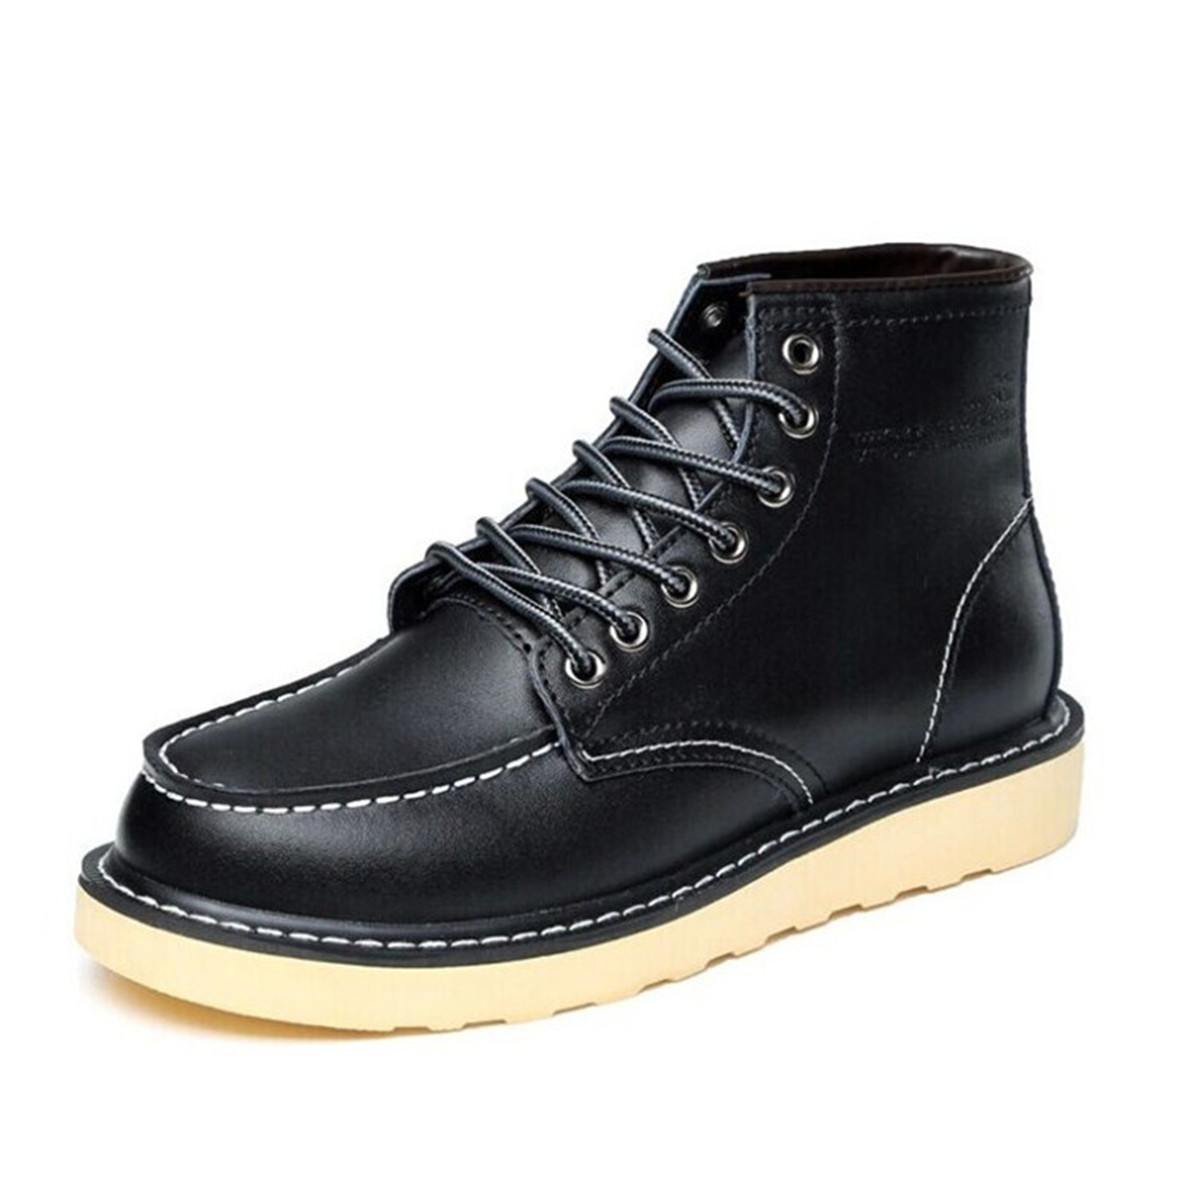 Mens-High-Top-Wedge-Sole-Soft-Toe-Lace-up-Work-Military-Ankle-Boots-Shoes